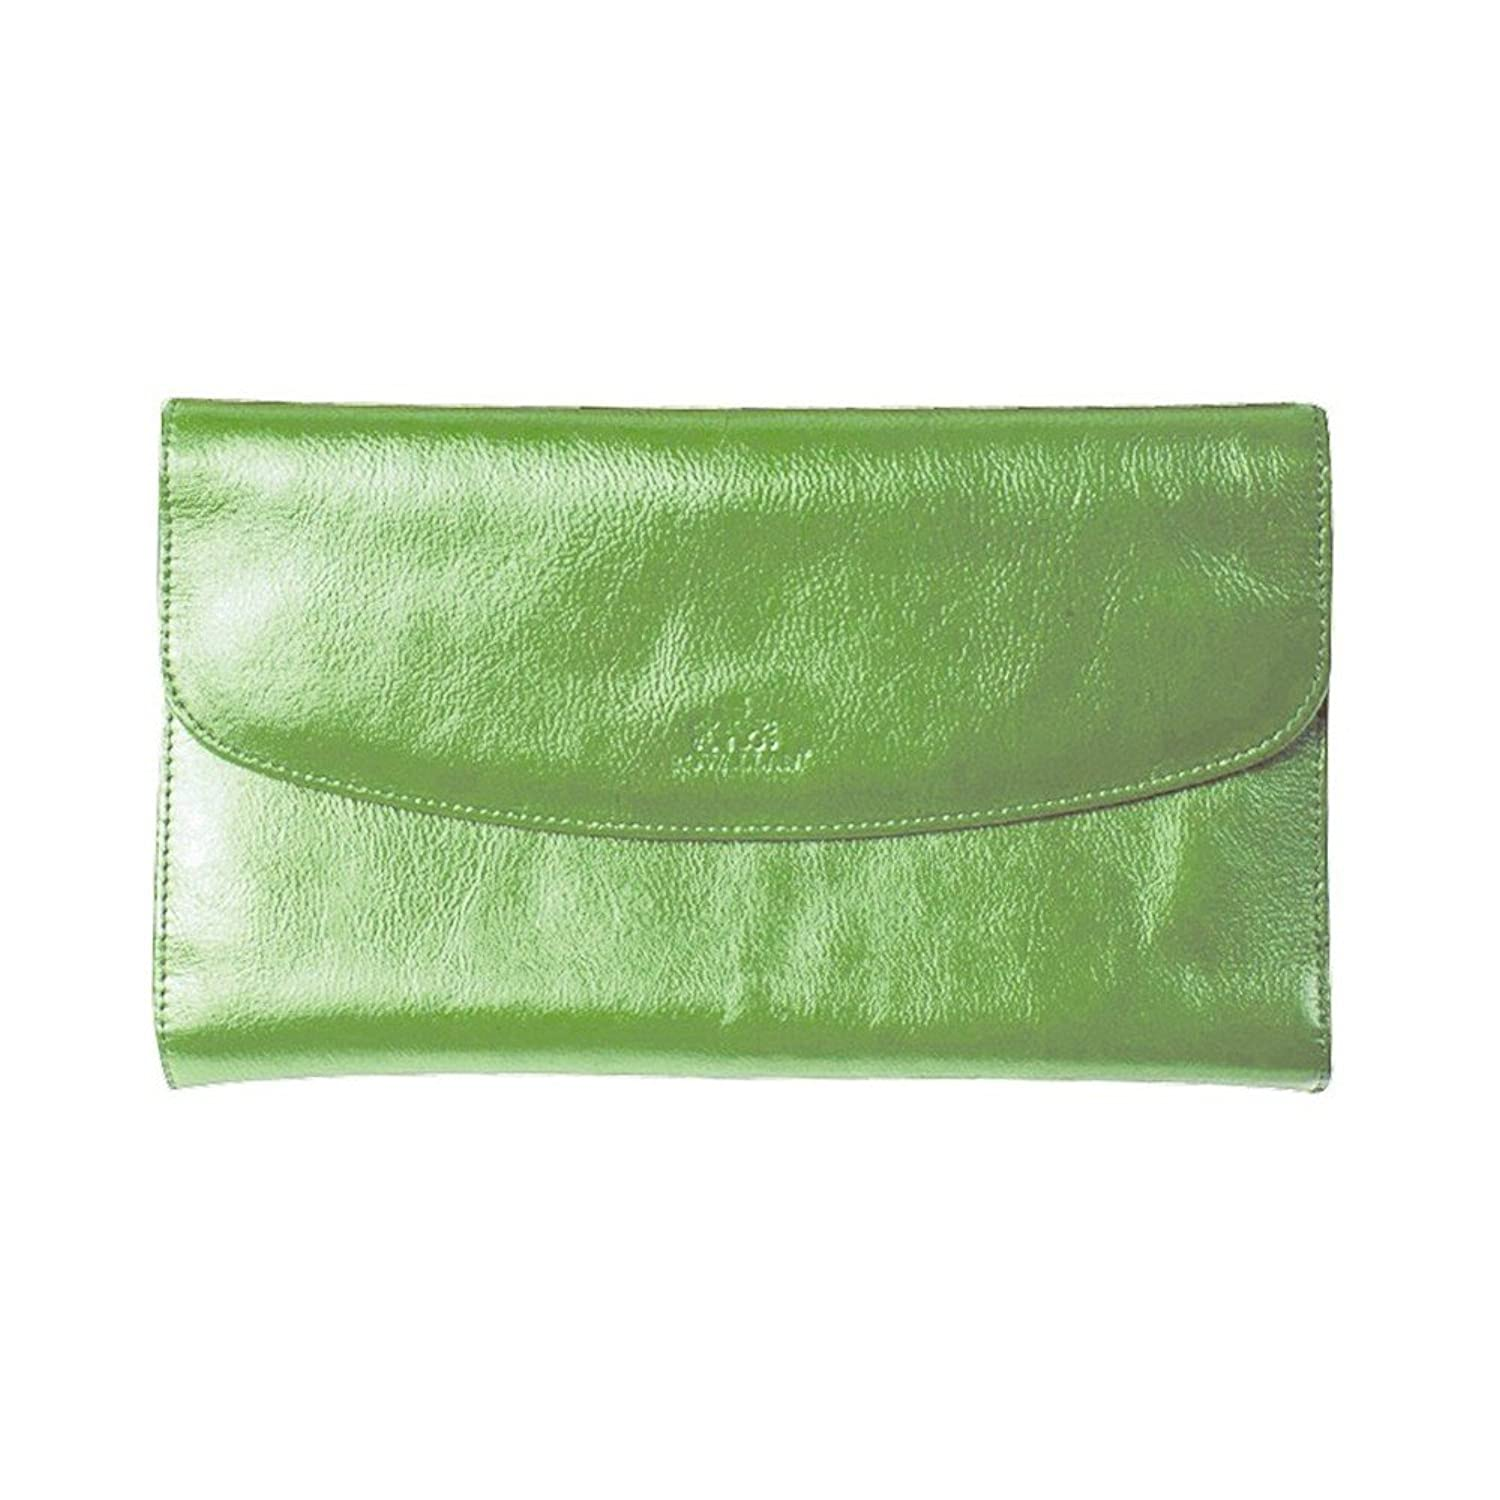 Christal Lime Green Leather Jewelry Clutch